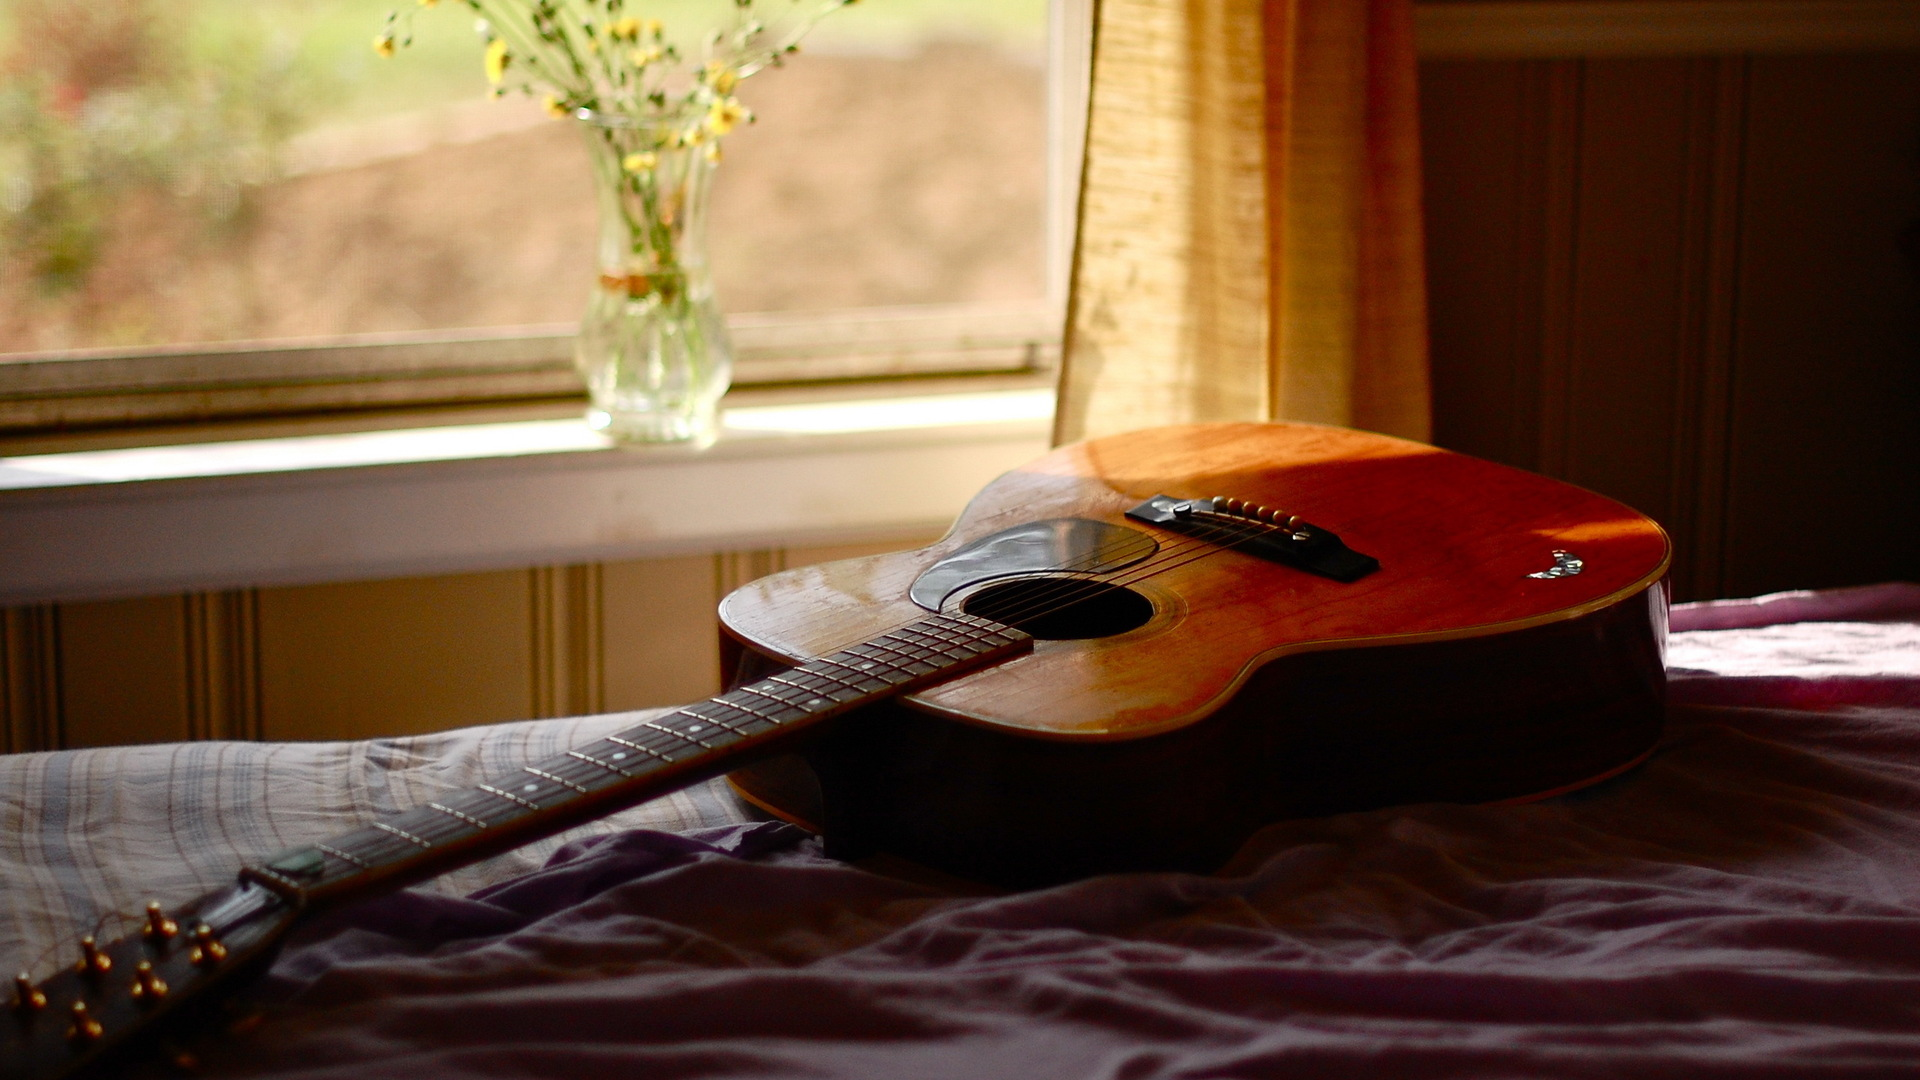 Acoustic Guitar - Wallpaper, High Definition, High Quality ...